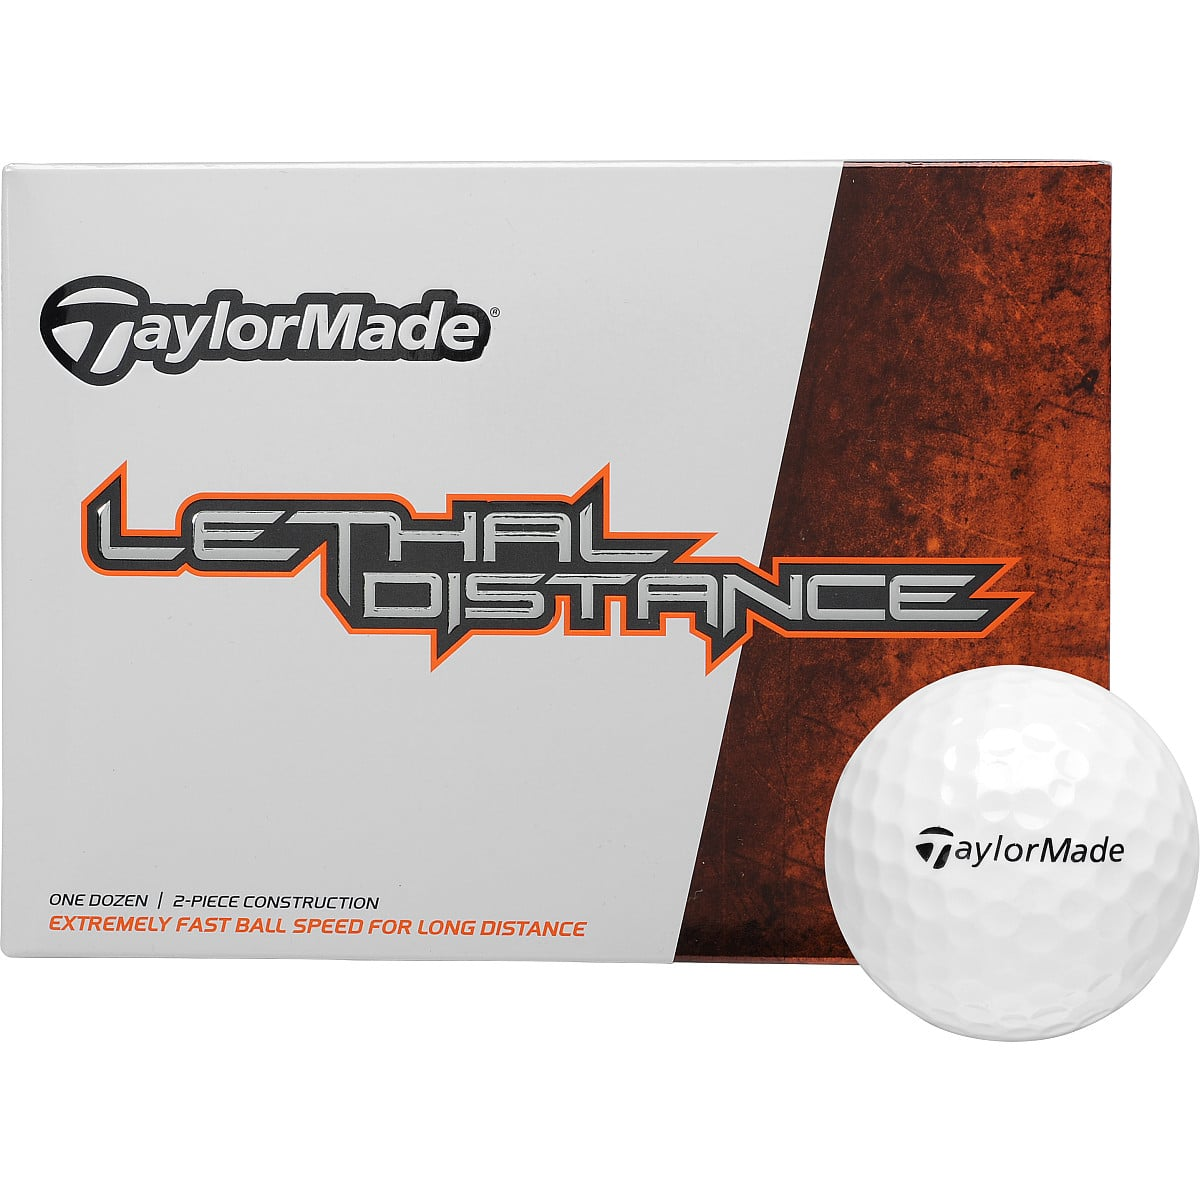 2x 12-Pack Golf Balls: TaylorMade Lethal $23.75, NIKE NDX Turbo  $19.50 + Free Shipping